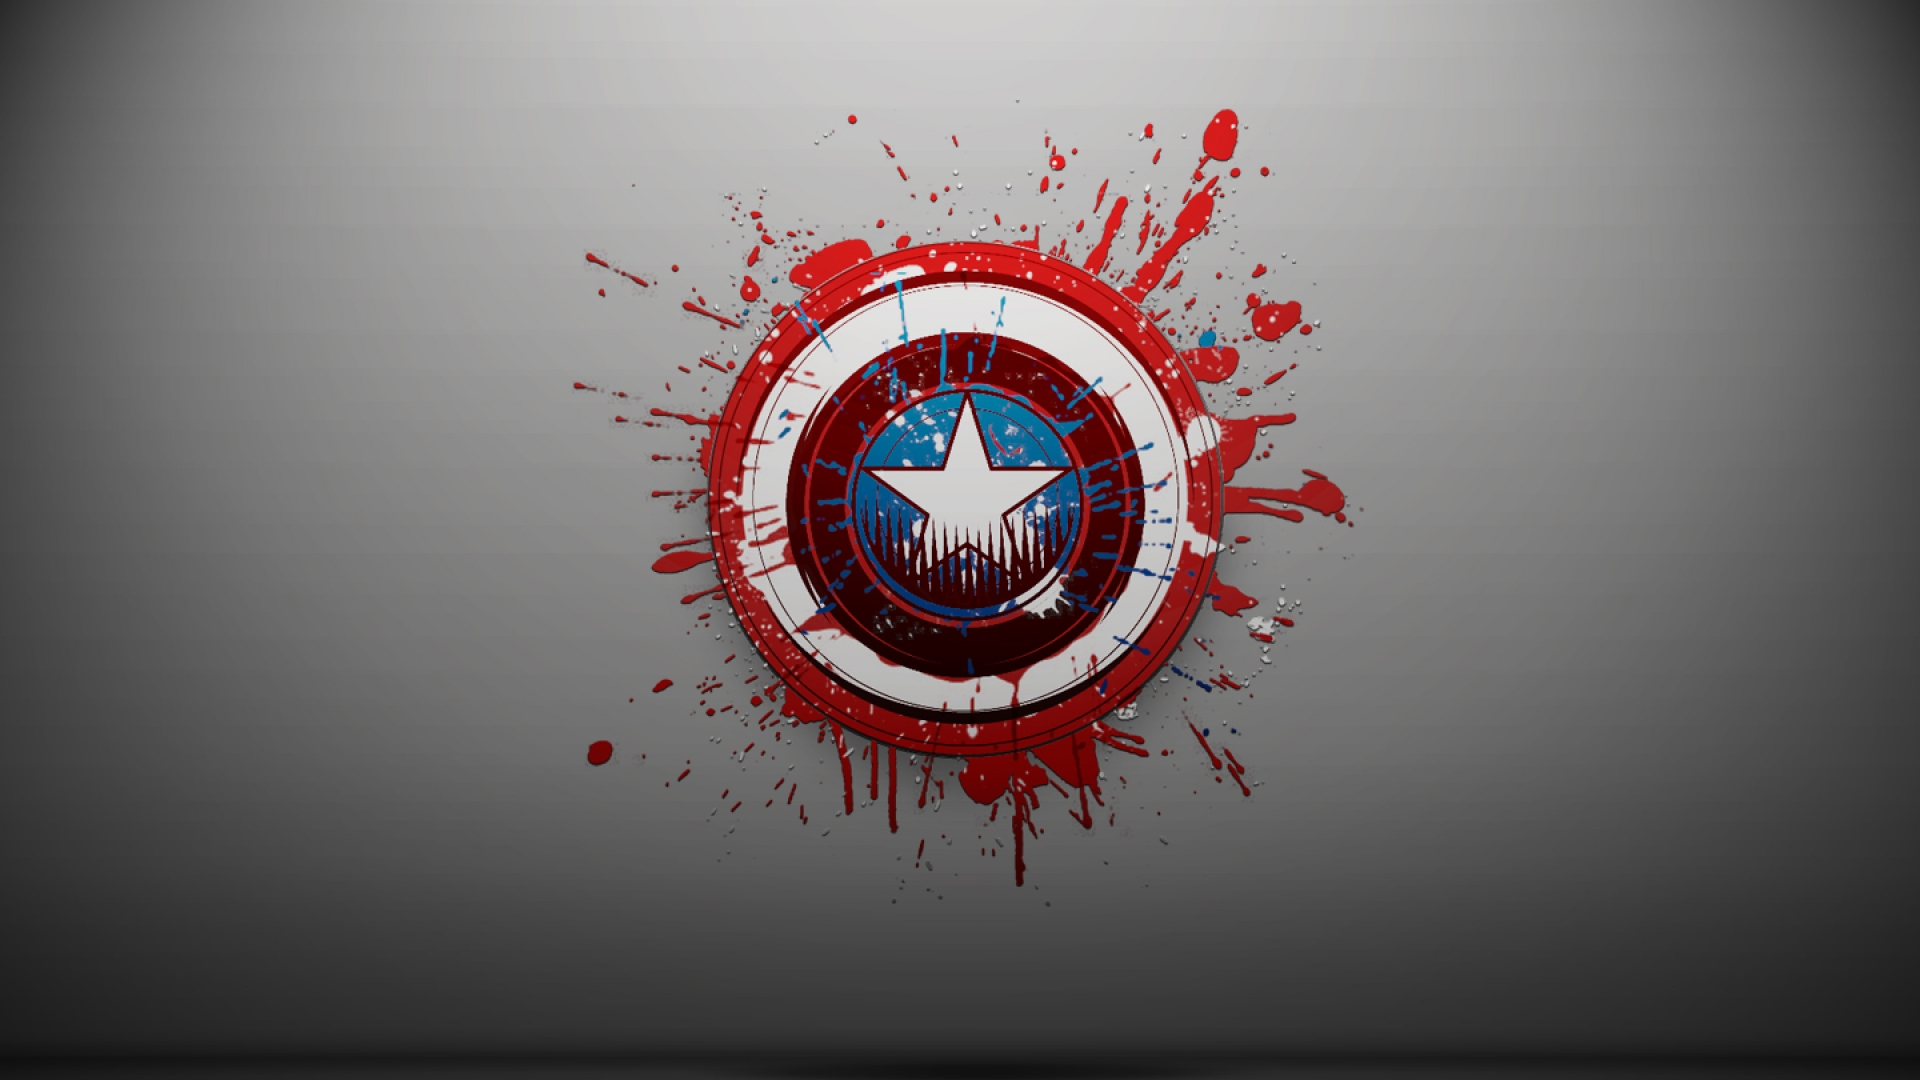 Hd wallpaper of captain america - Captain America Shield Wallpapers Hd Wallpapers 1 Html Code Superheroes On Pinterest Green Lanterns The Flash And Spiderman